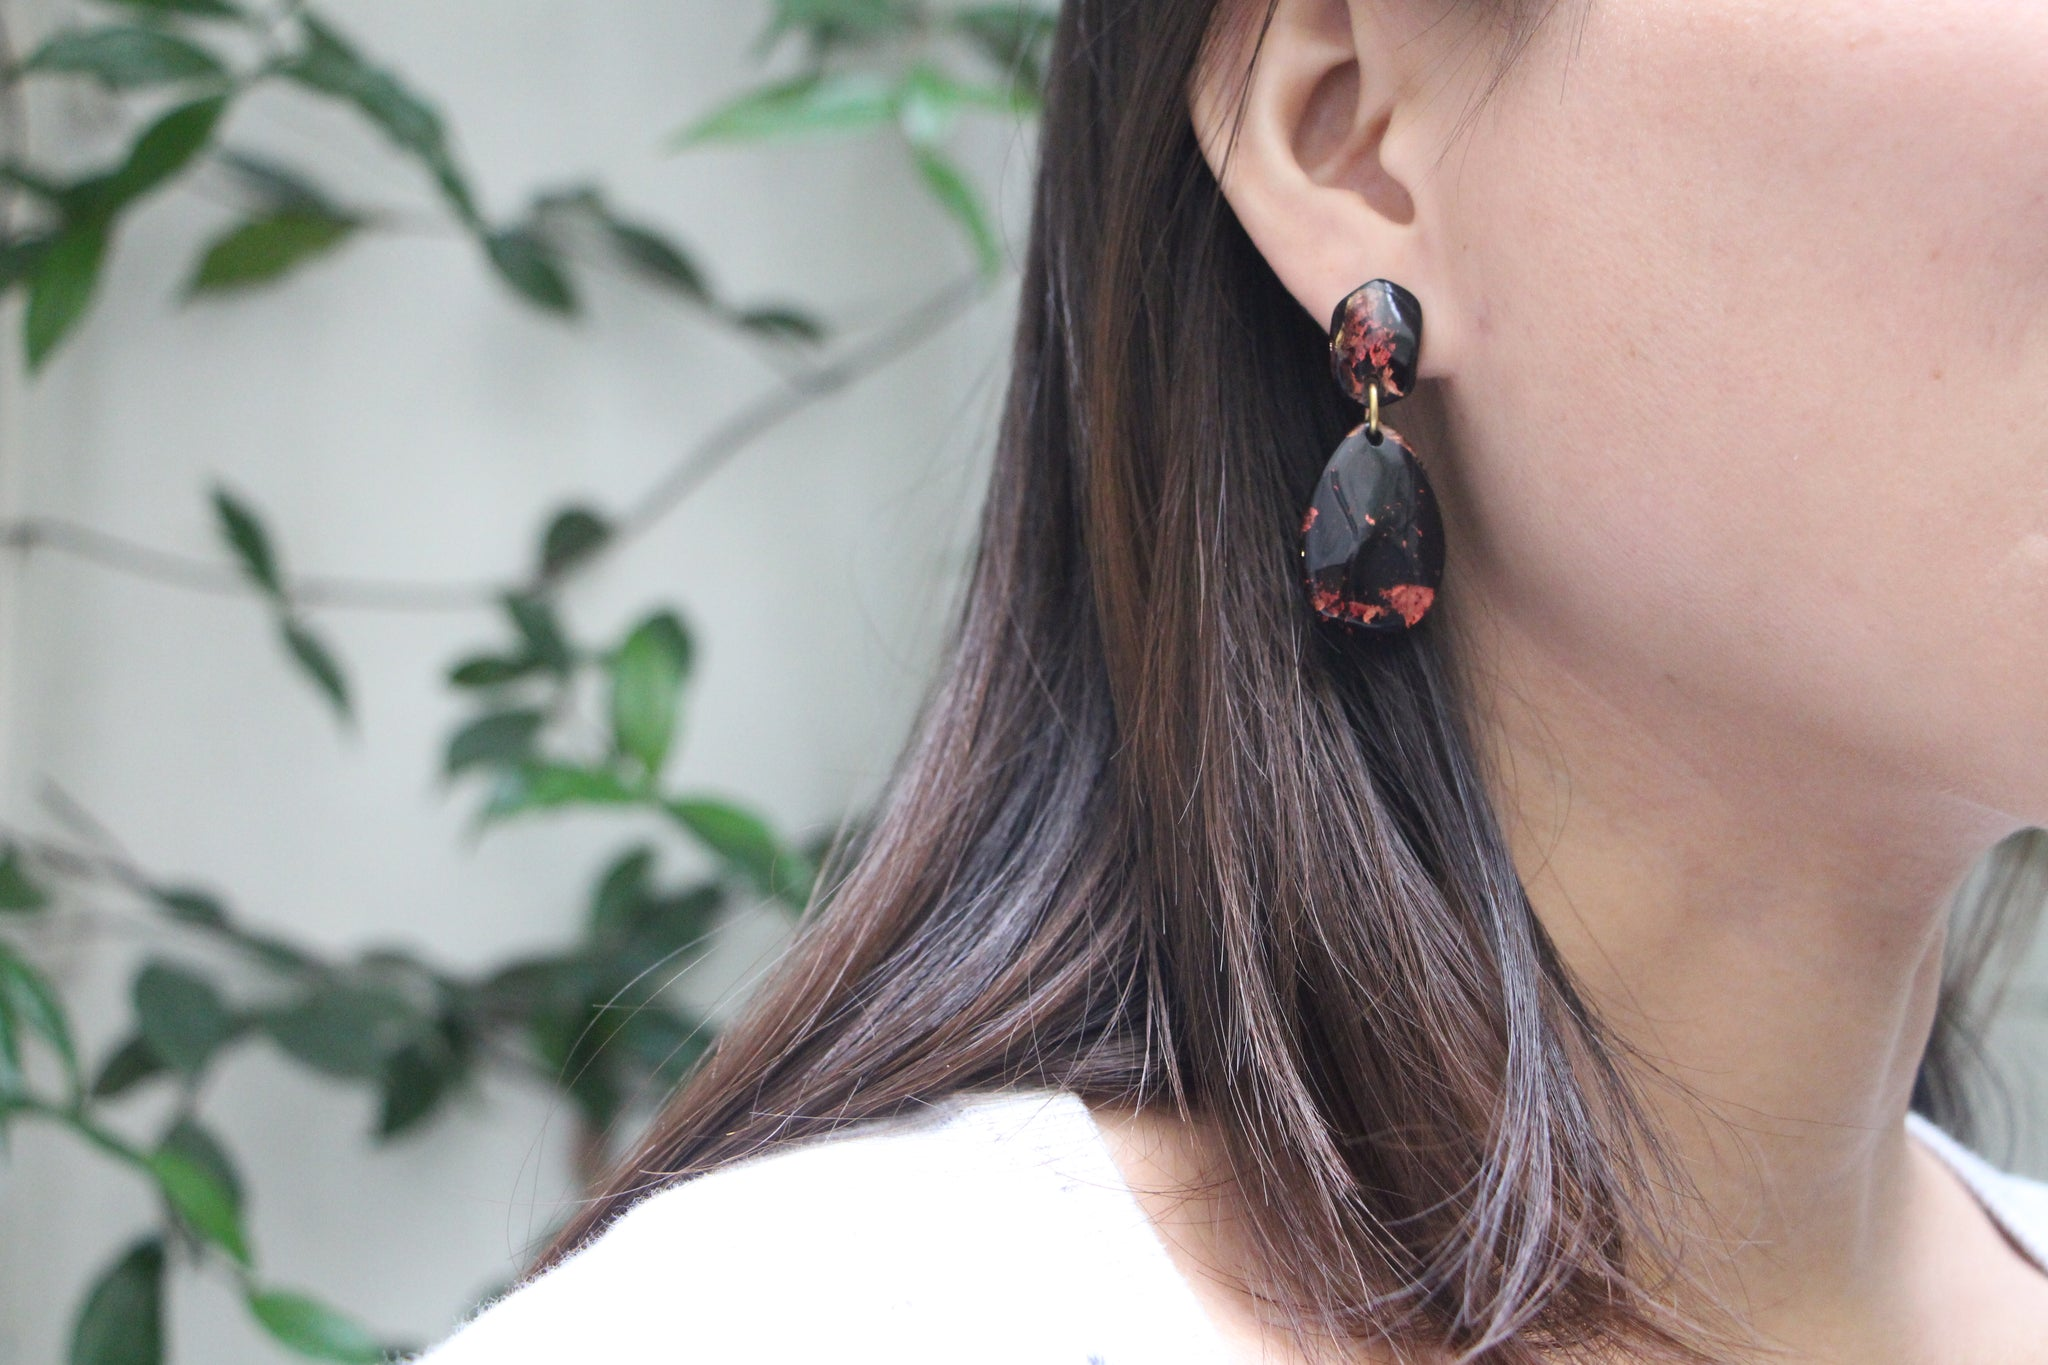 Mona's Dangling Earrings - Safari / les boucles pendantes de Mona